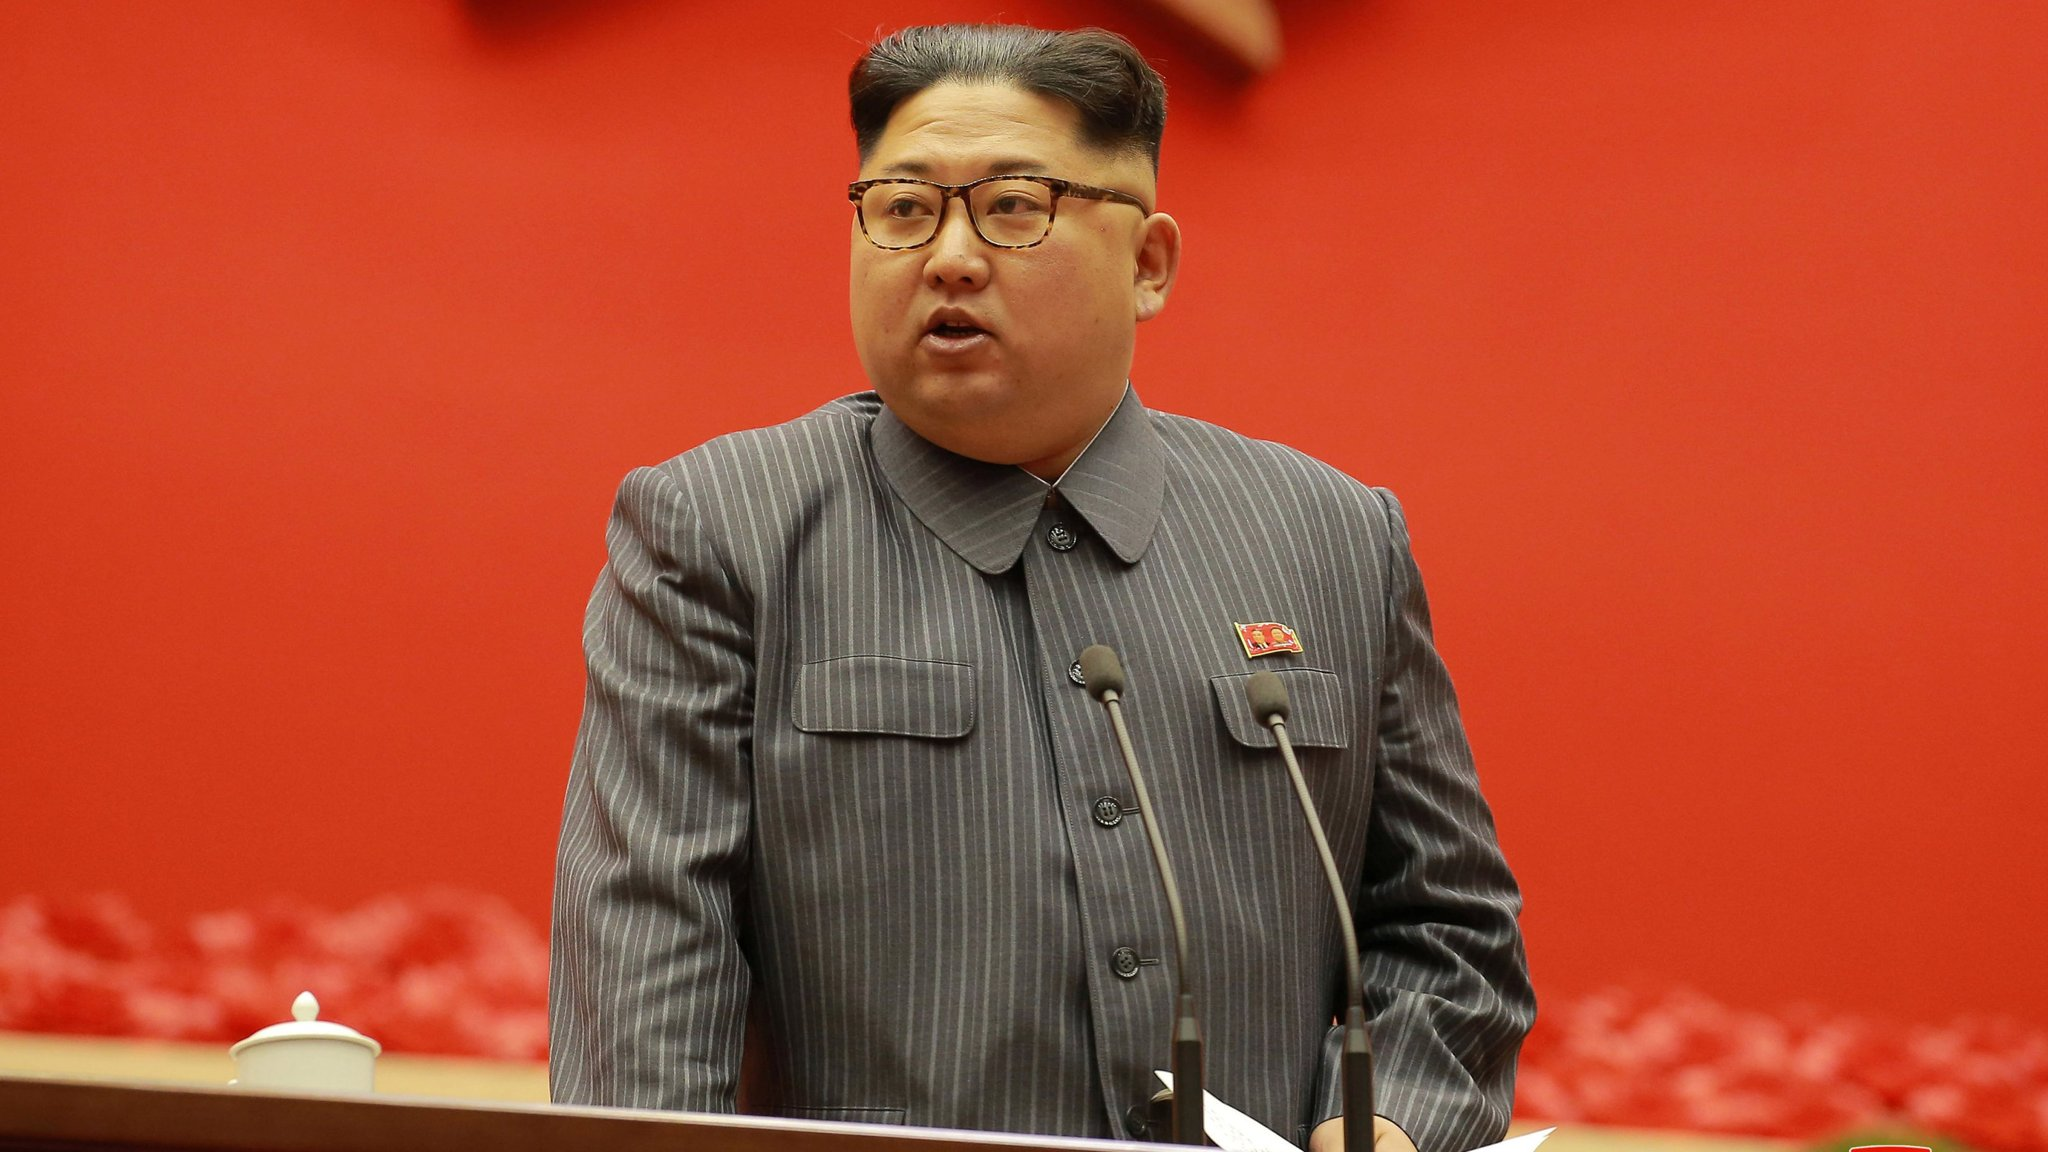 North Korea calls UN sanctions an act of war